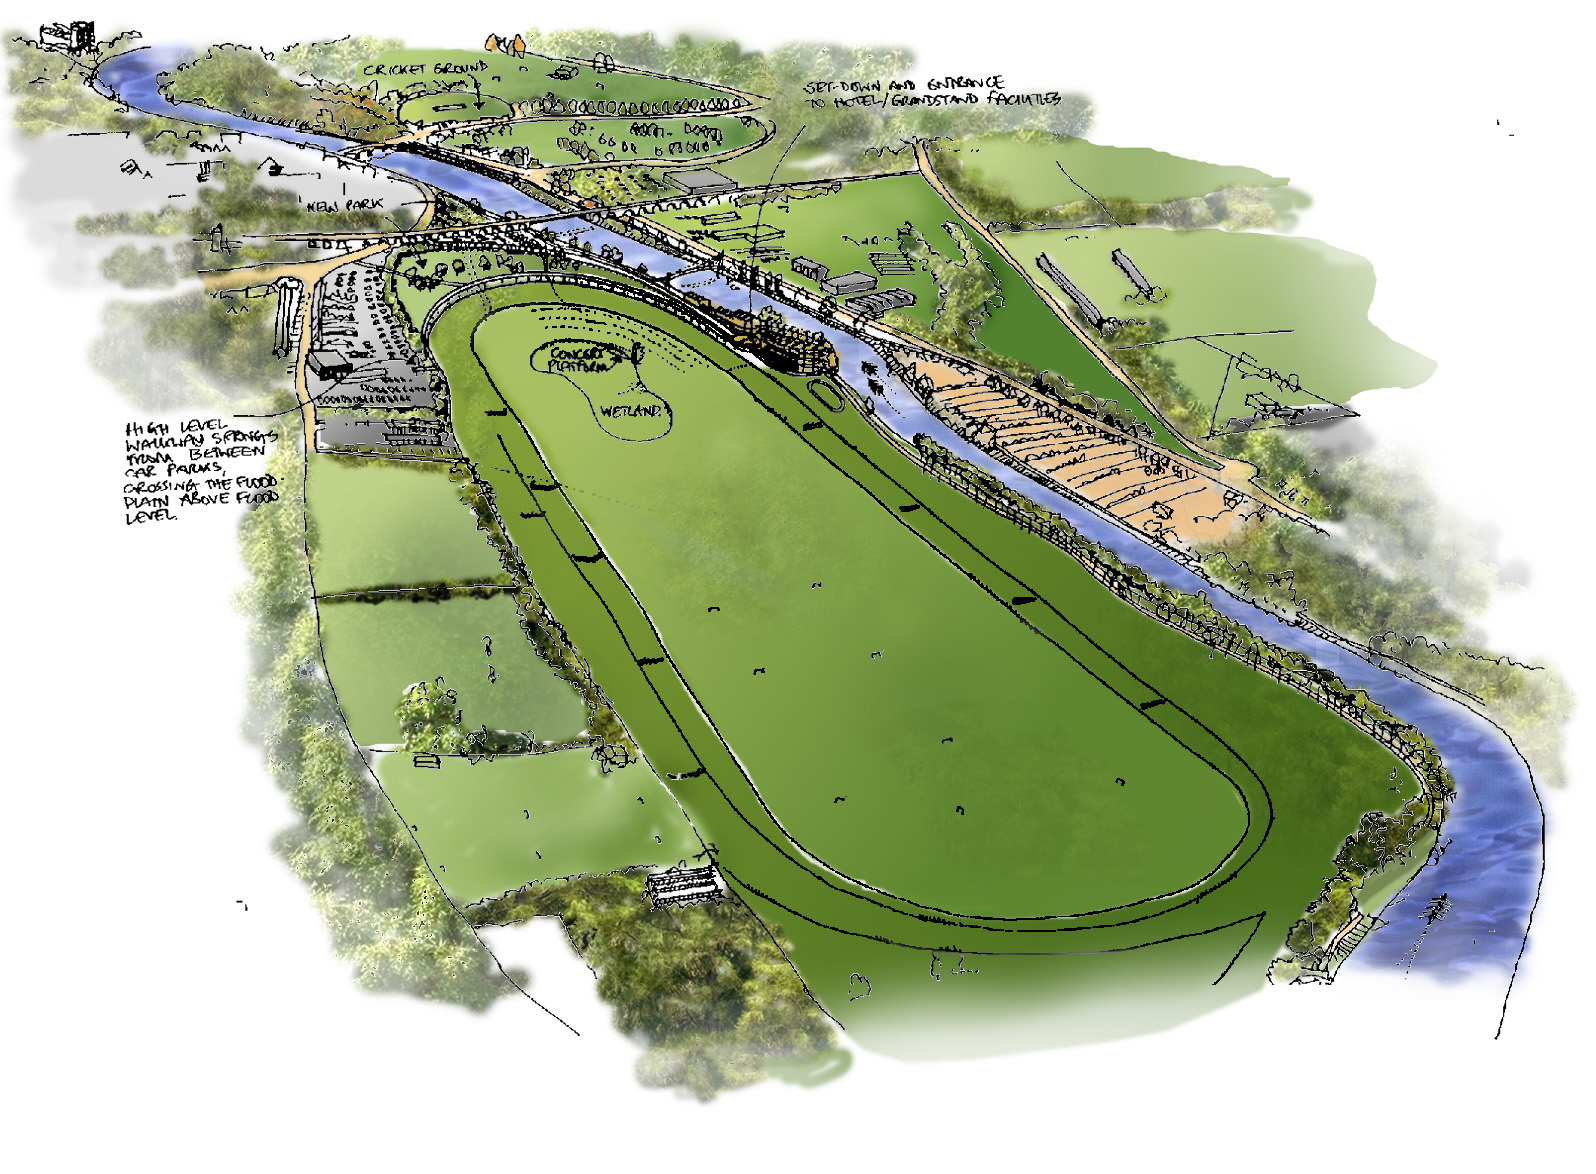 Worcester Racecourse Sketch Aerial View